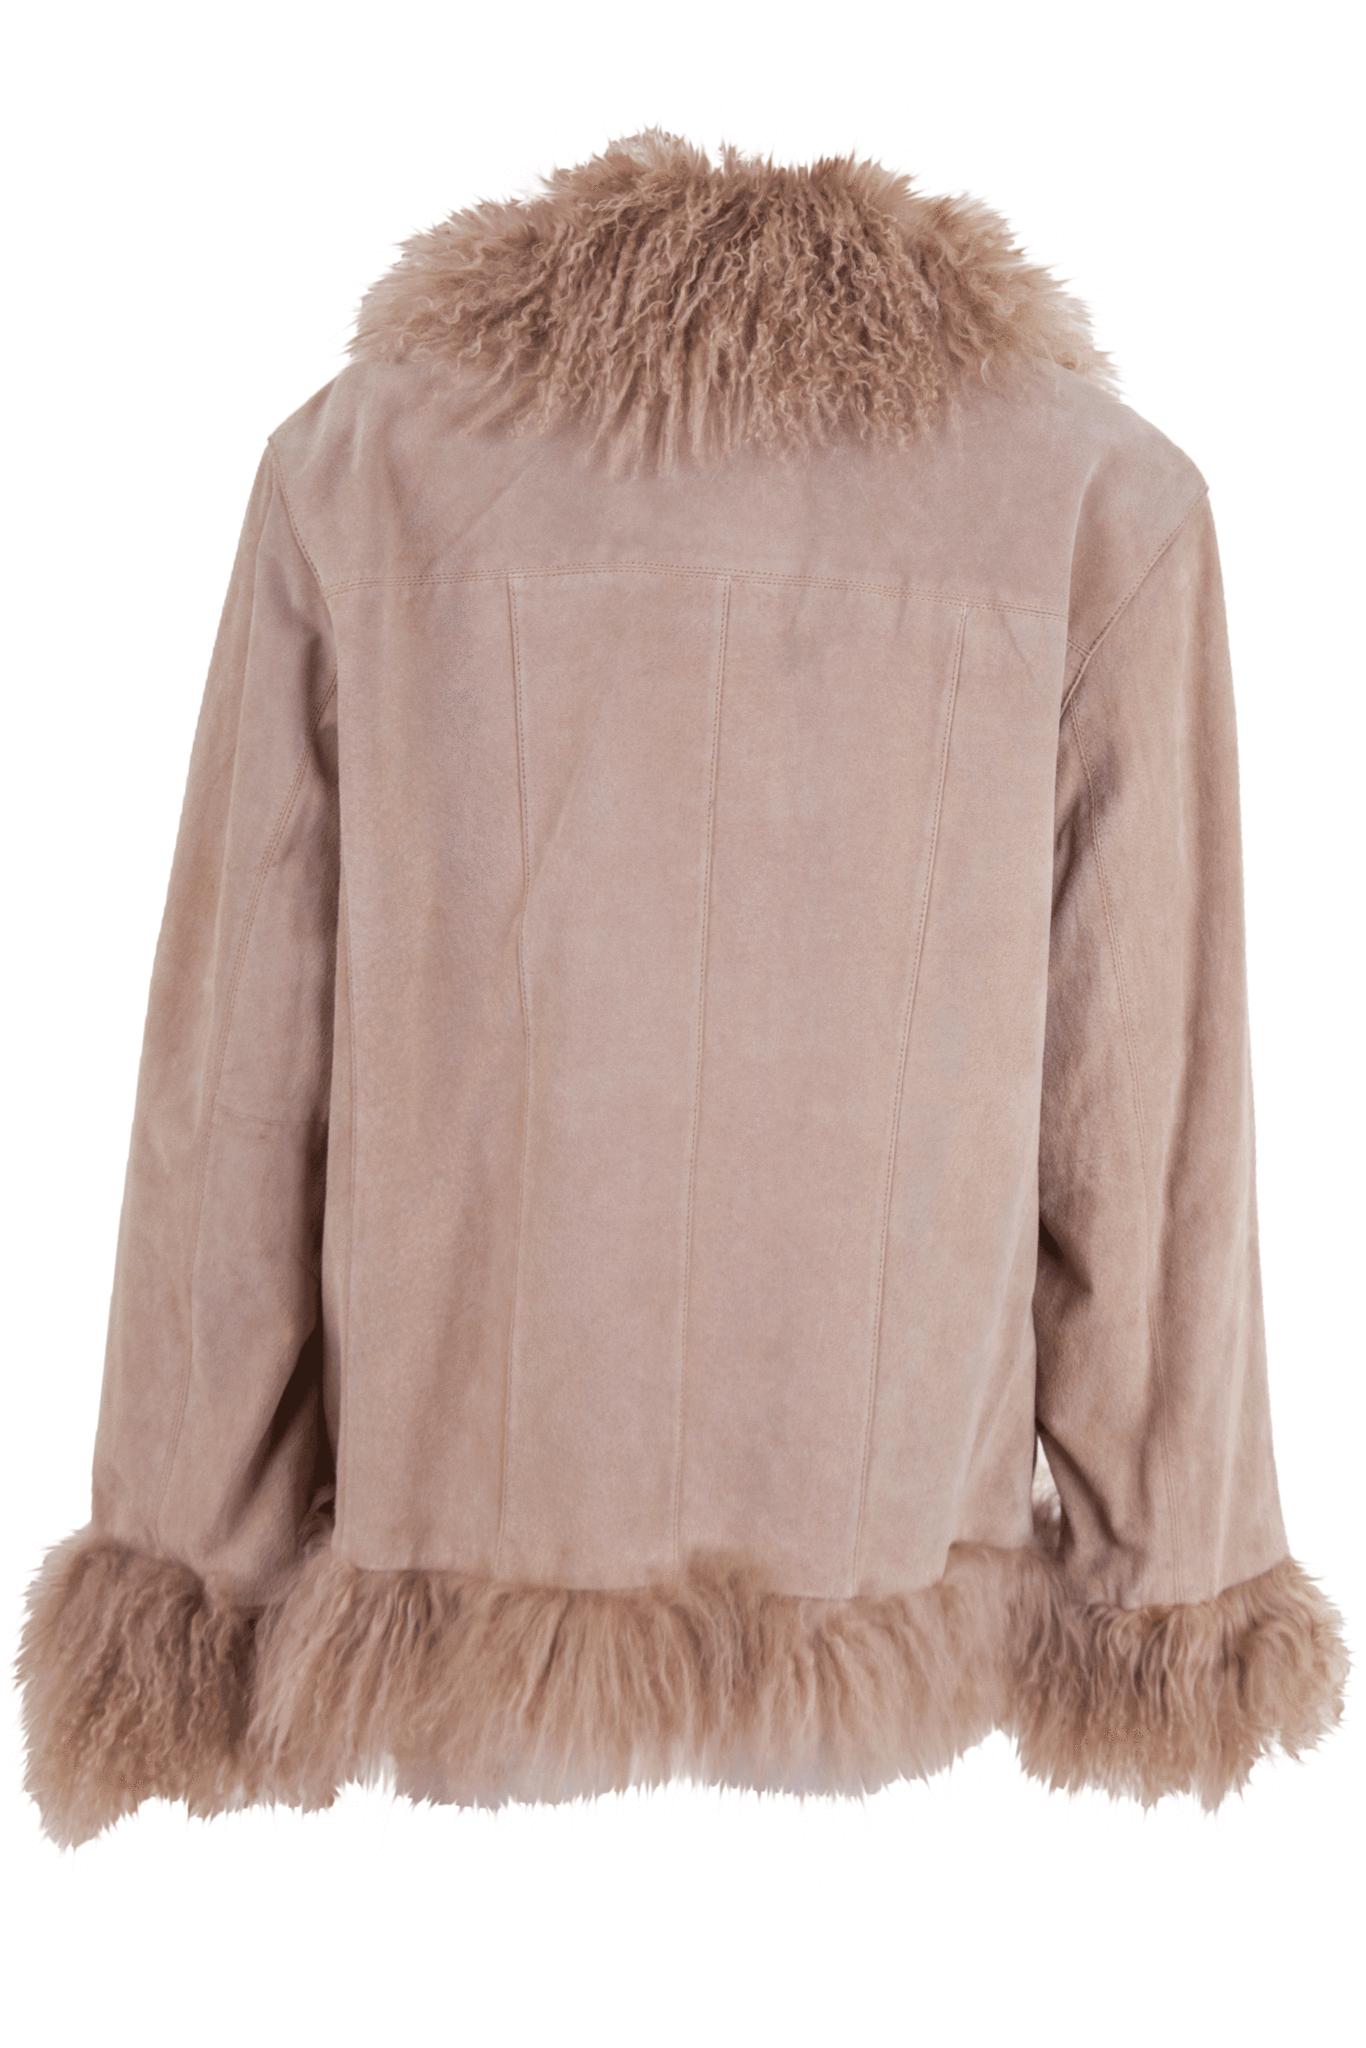 tan suede coat with fur trim